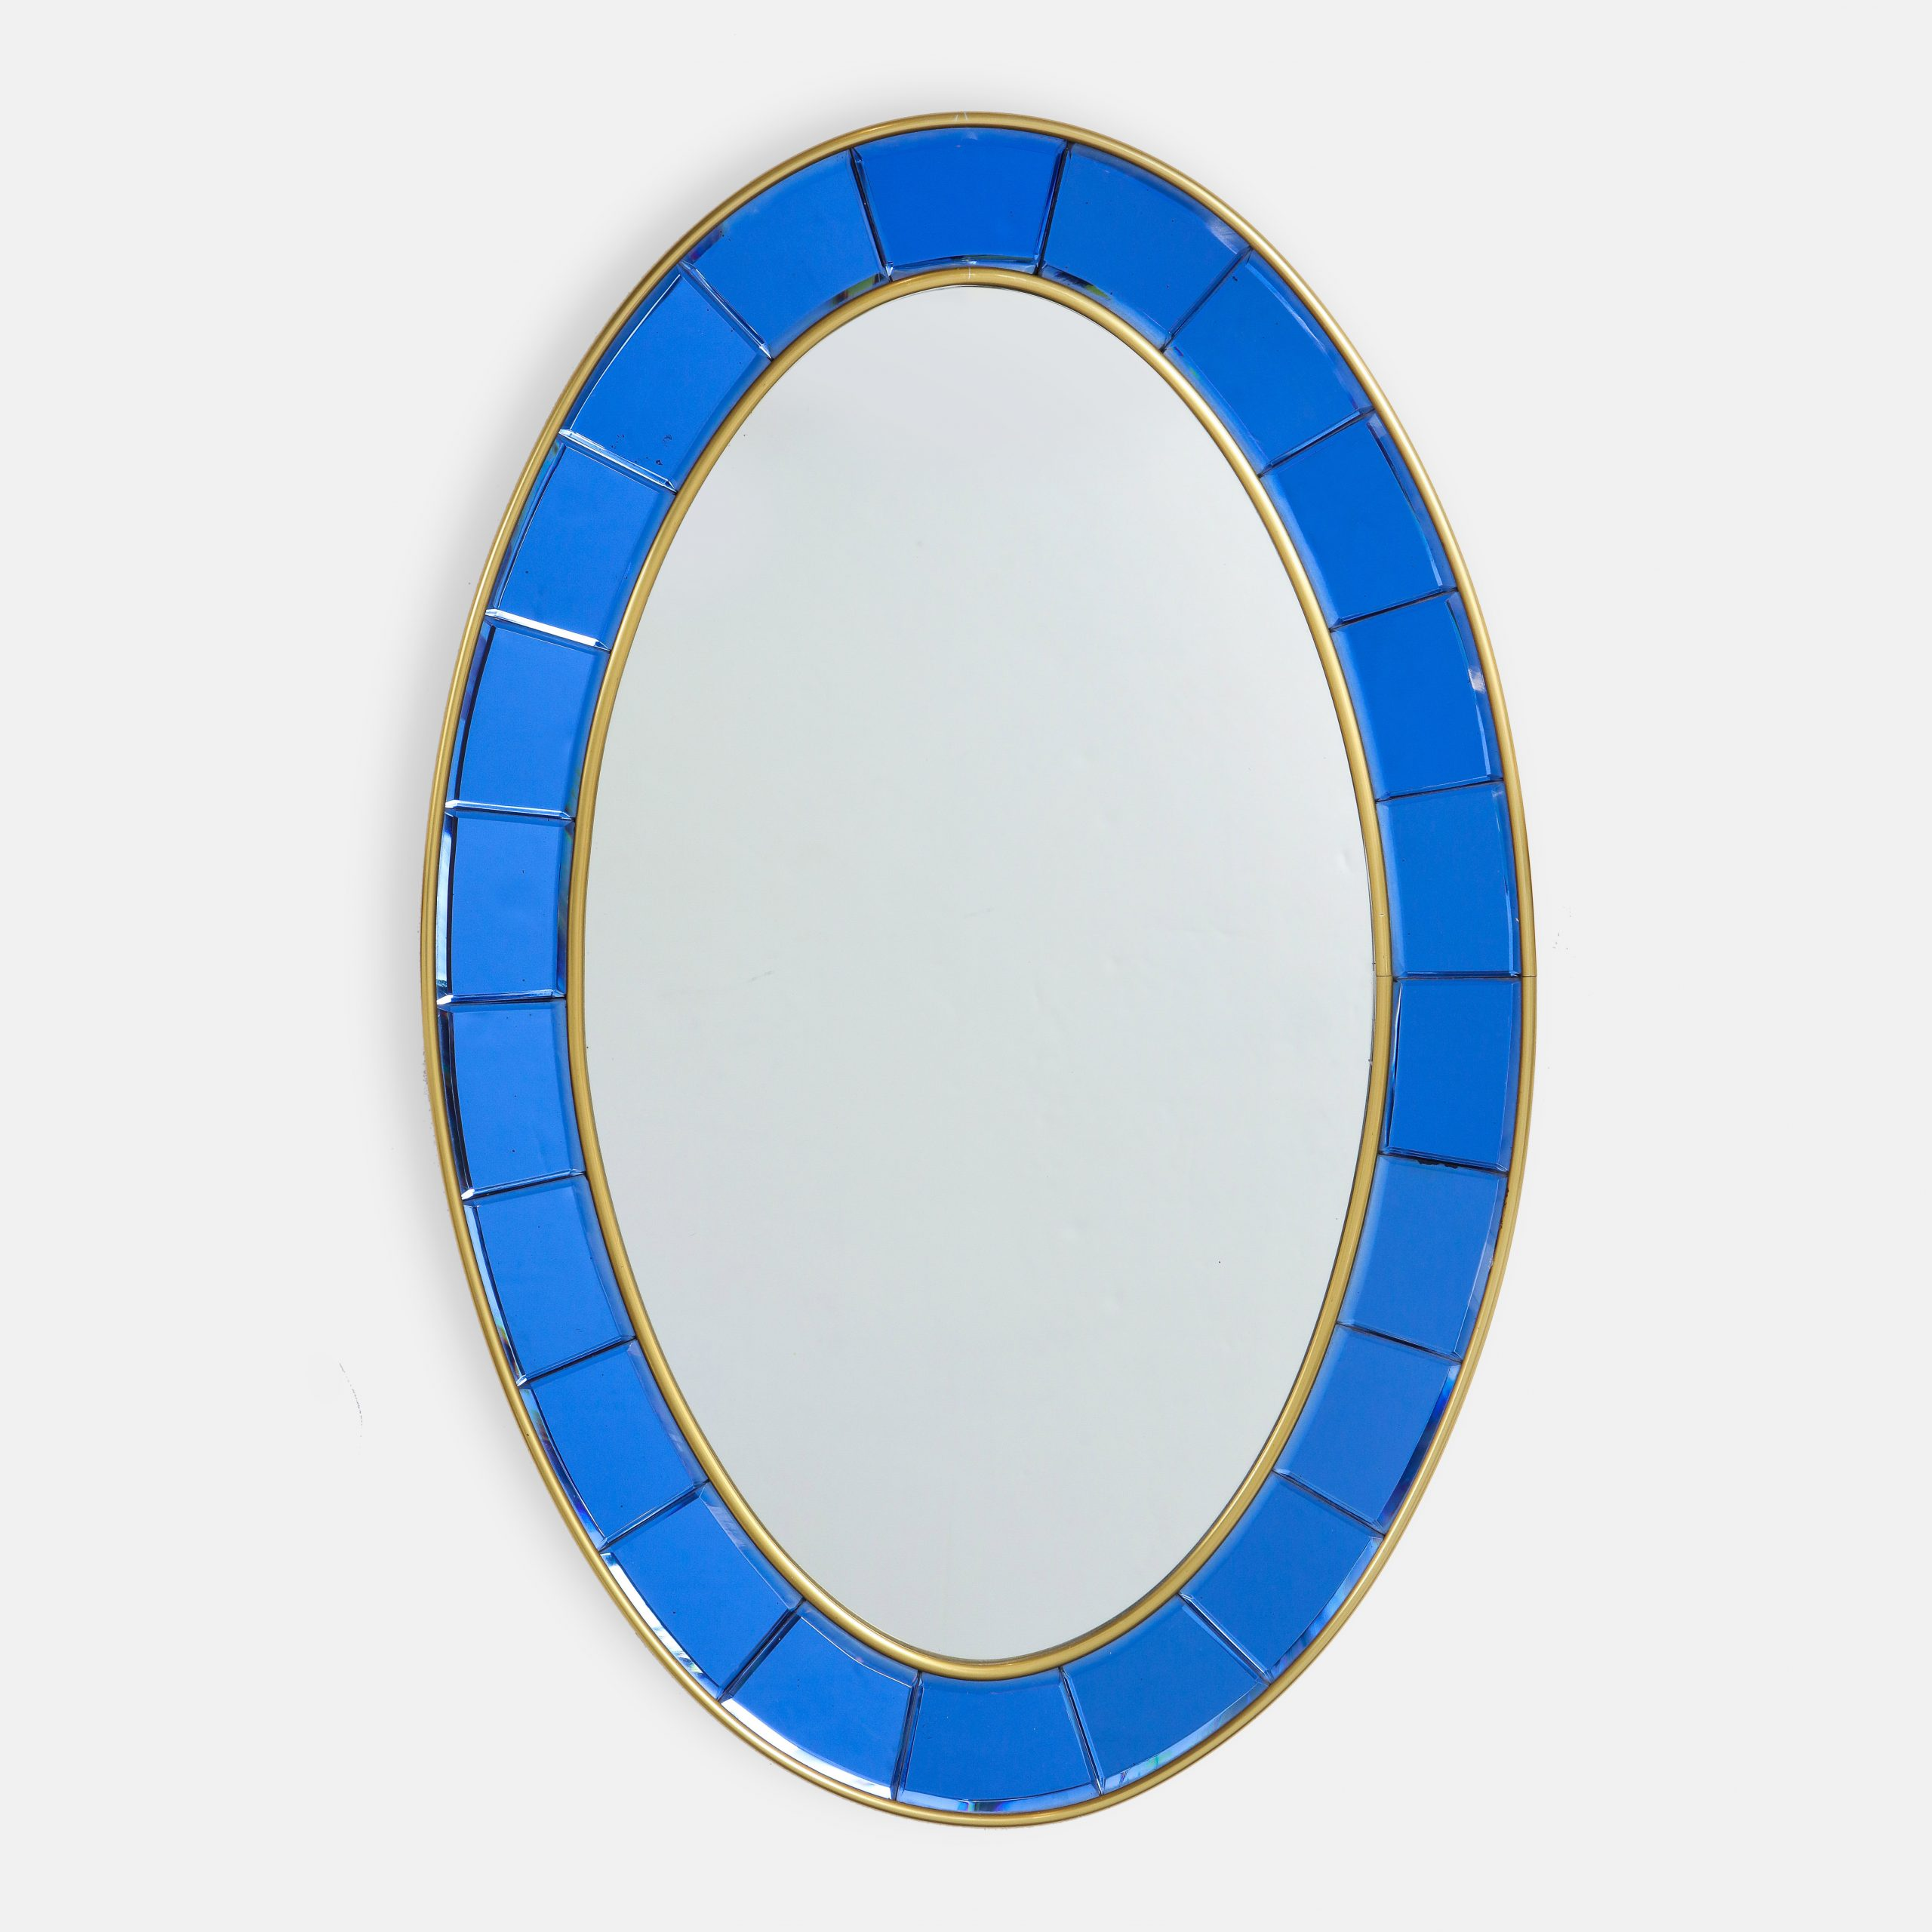 Hand-Cut Faceted Crystal Mirror by Cristal Art | soyun k.